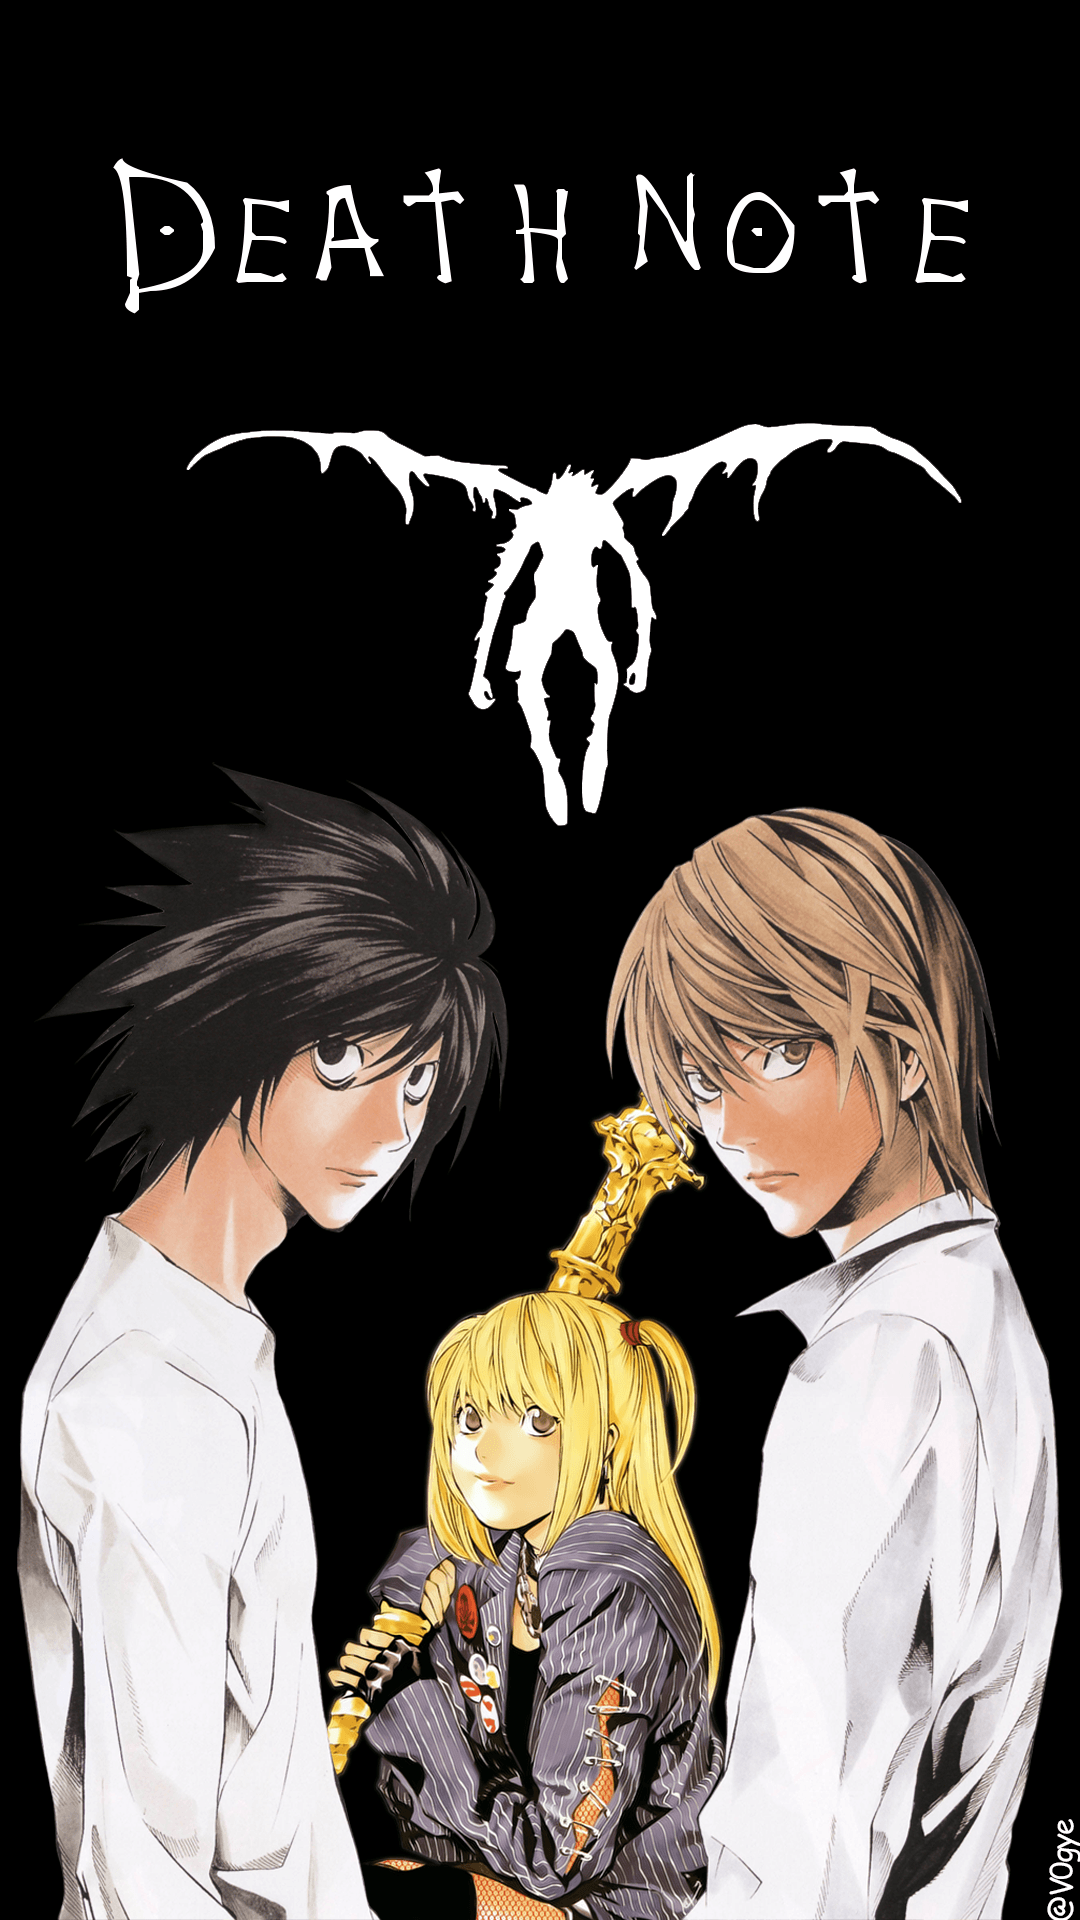 Death Note Phone Wallpapers - Top Free Death Note Phone Backgrounds